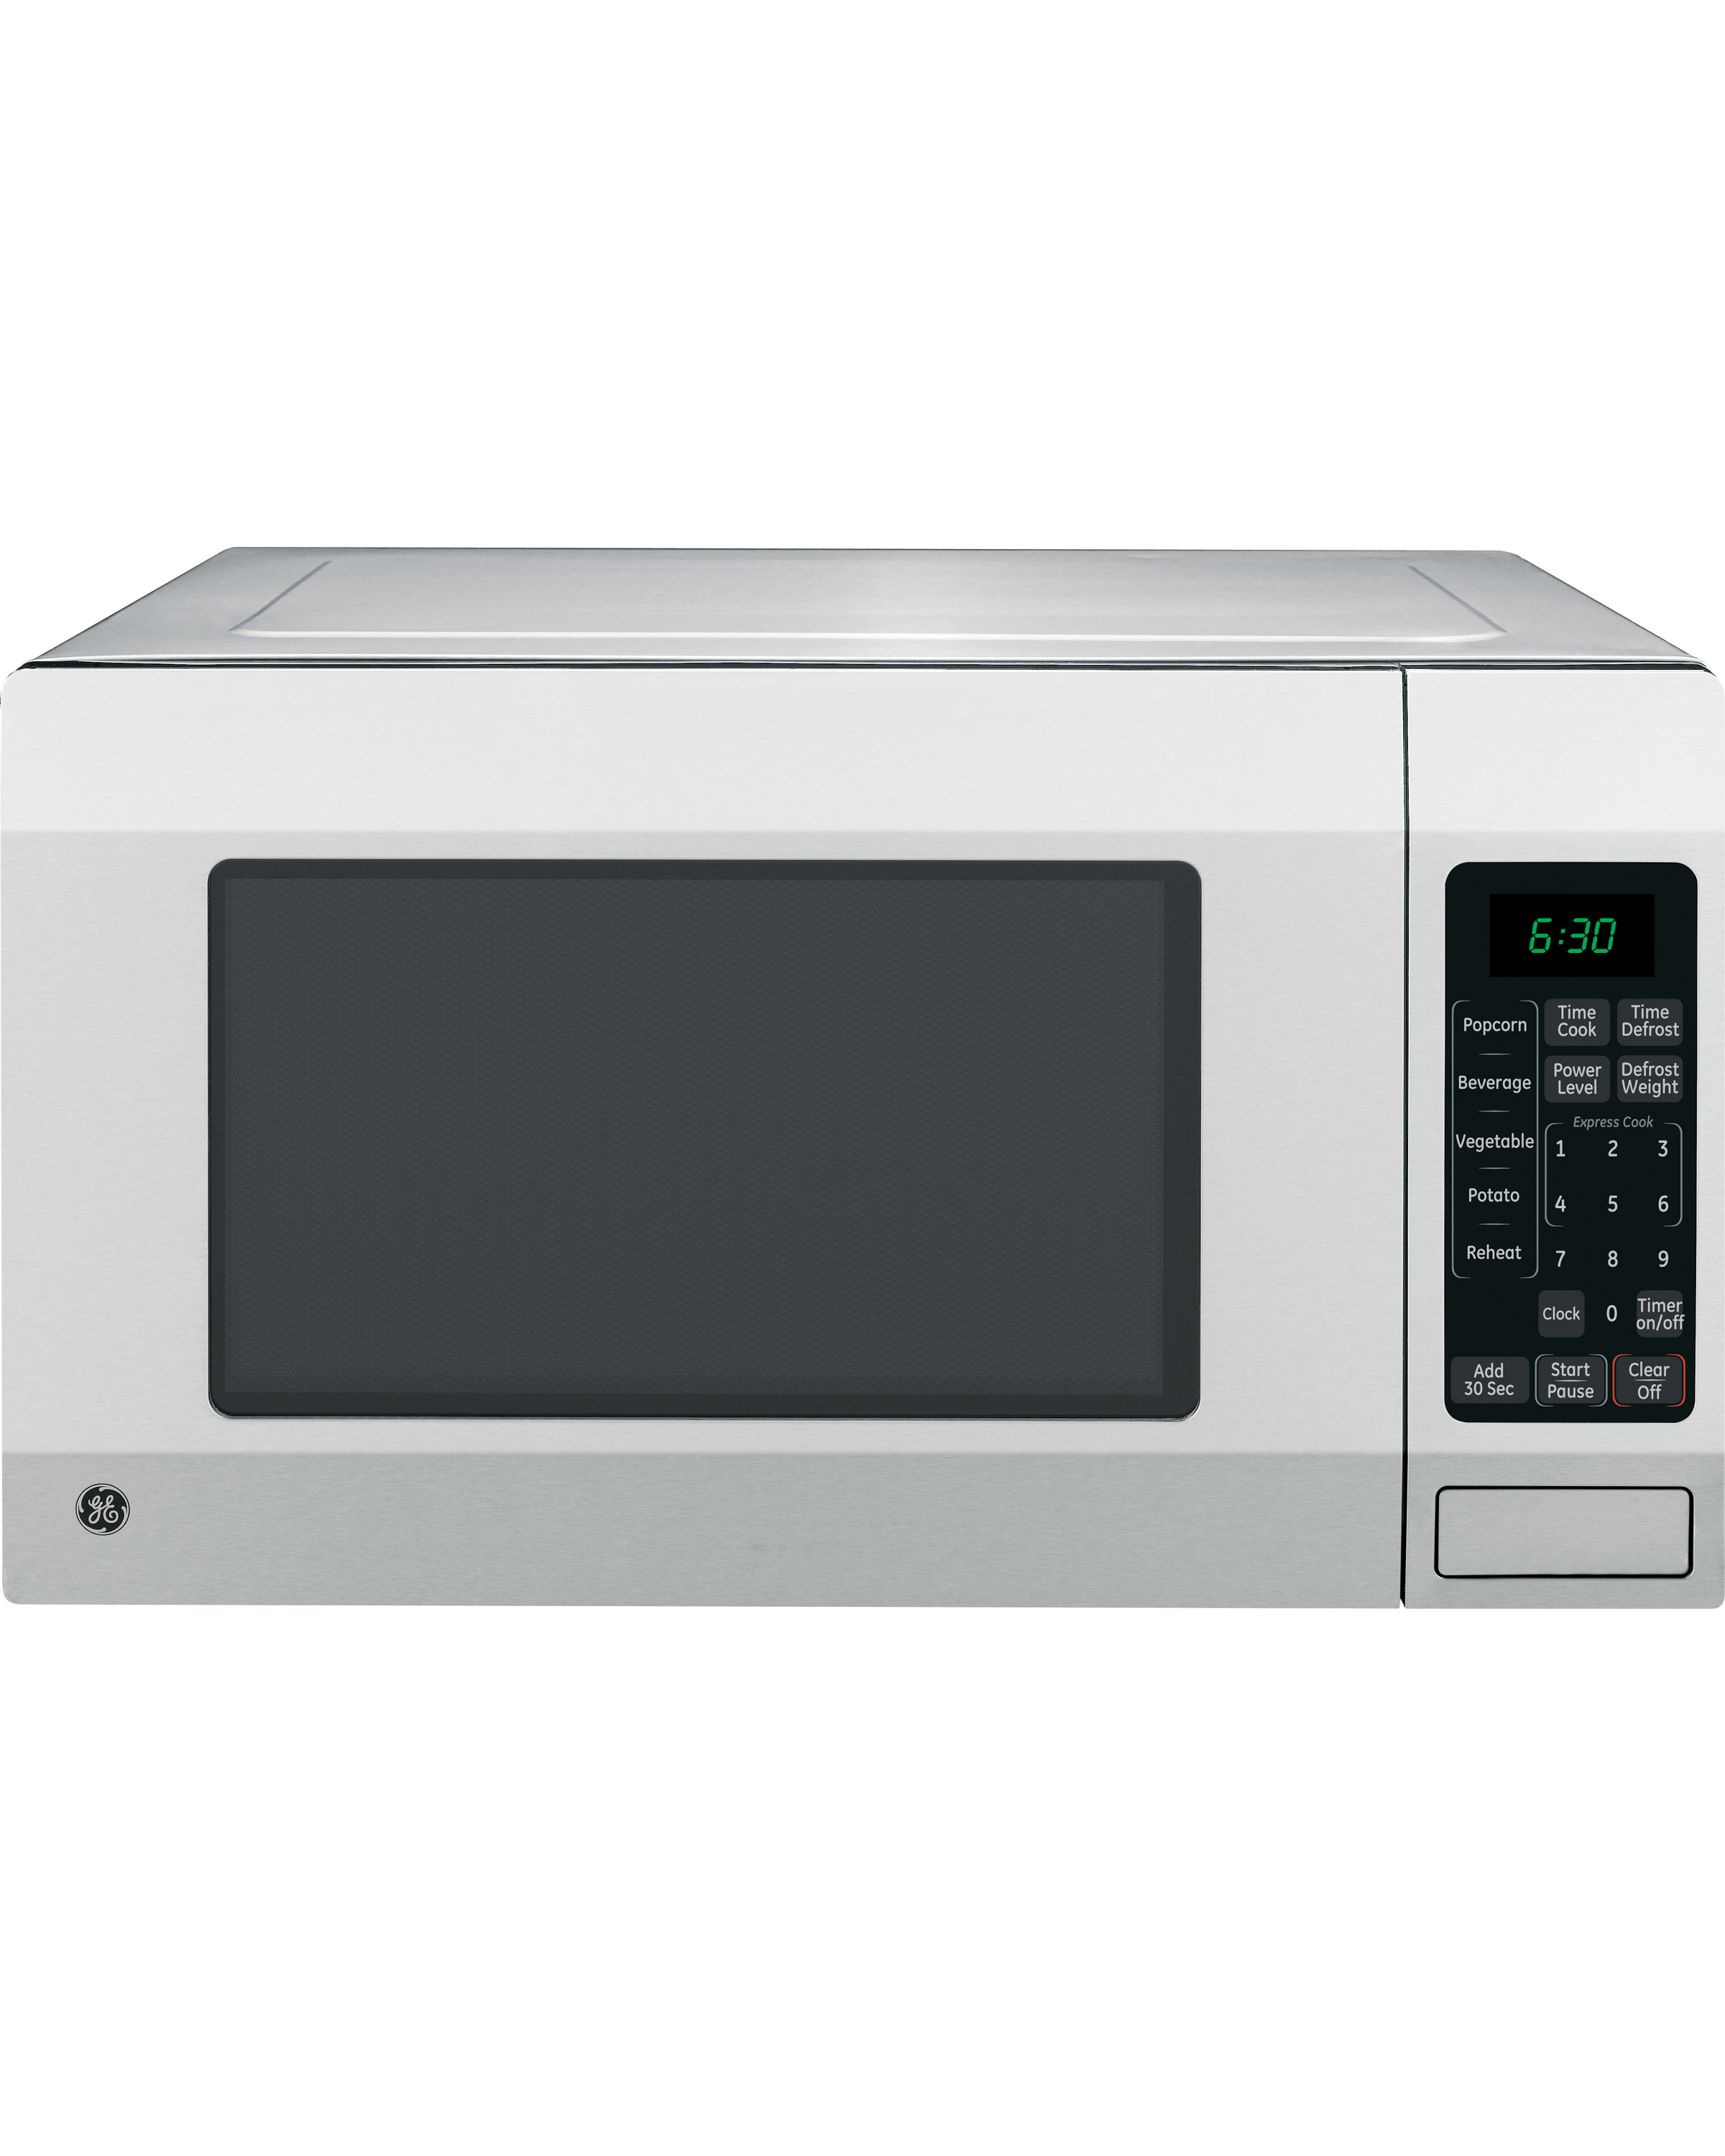 Hotpoint Countertop Microwave : Brand: GE, Model: JES1656SRSS, Color: Stainless Steel